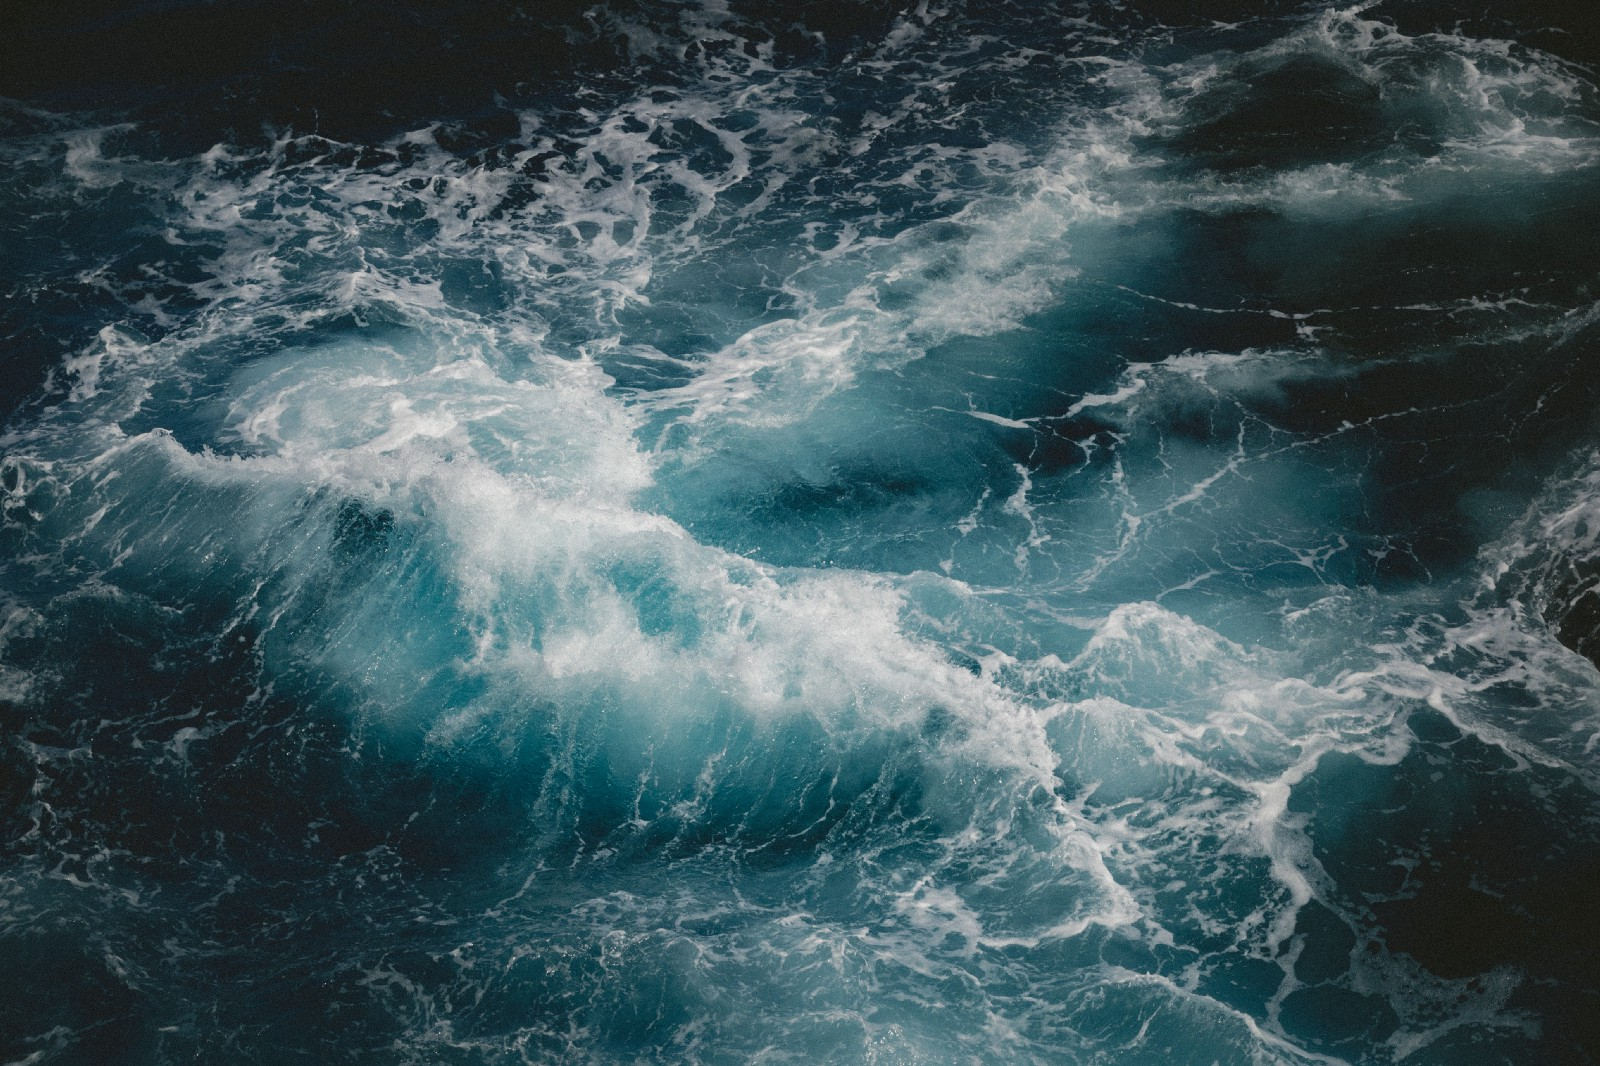 Storms Within Storms (The Ocean)